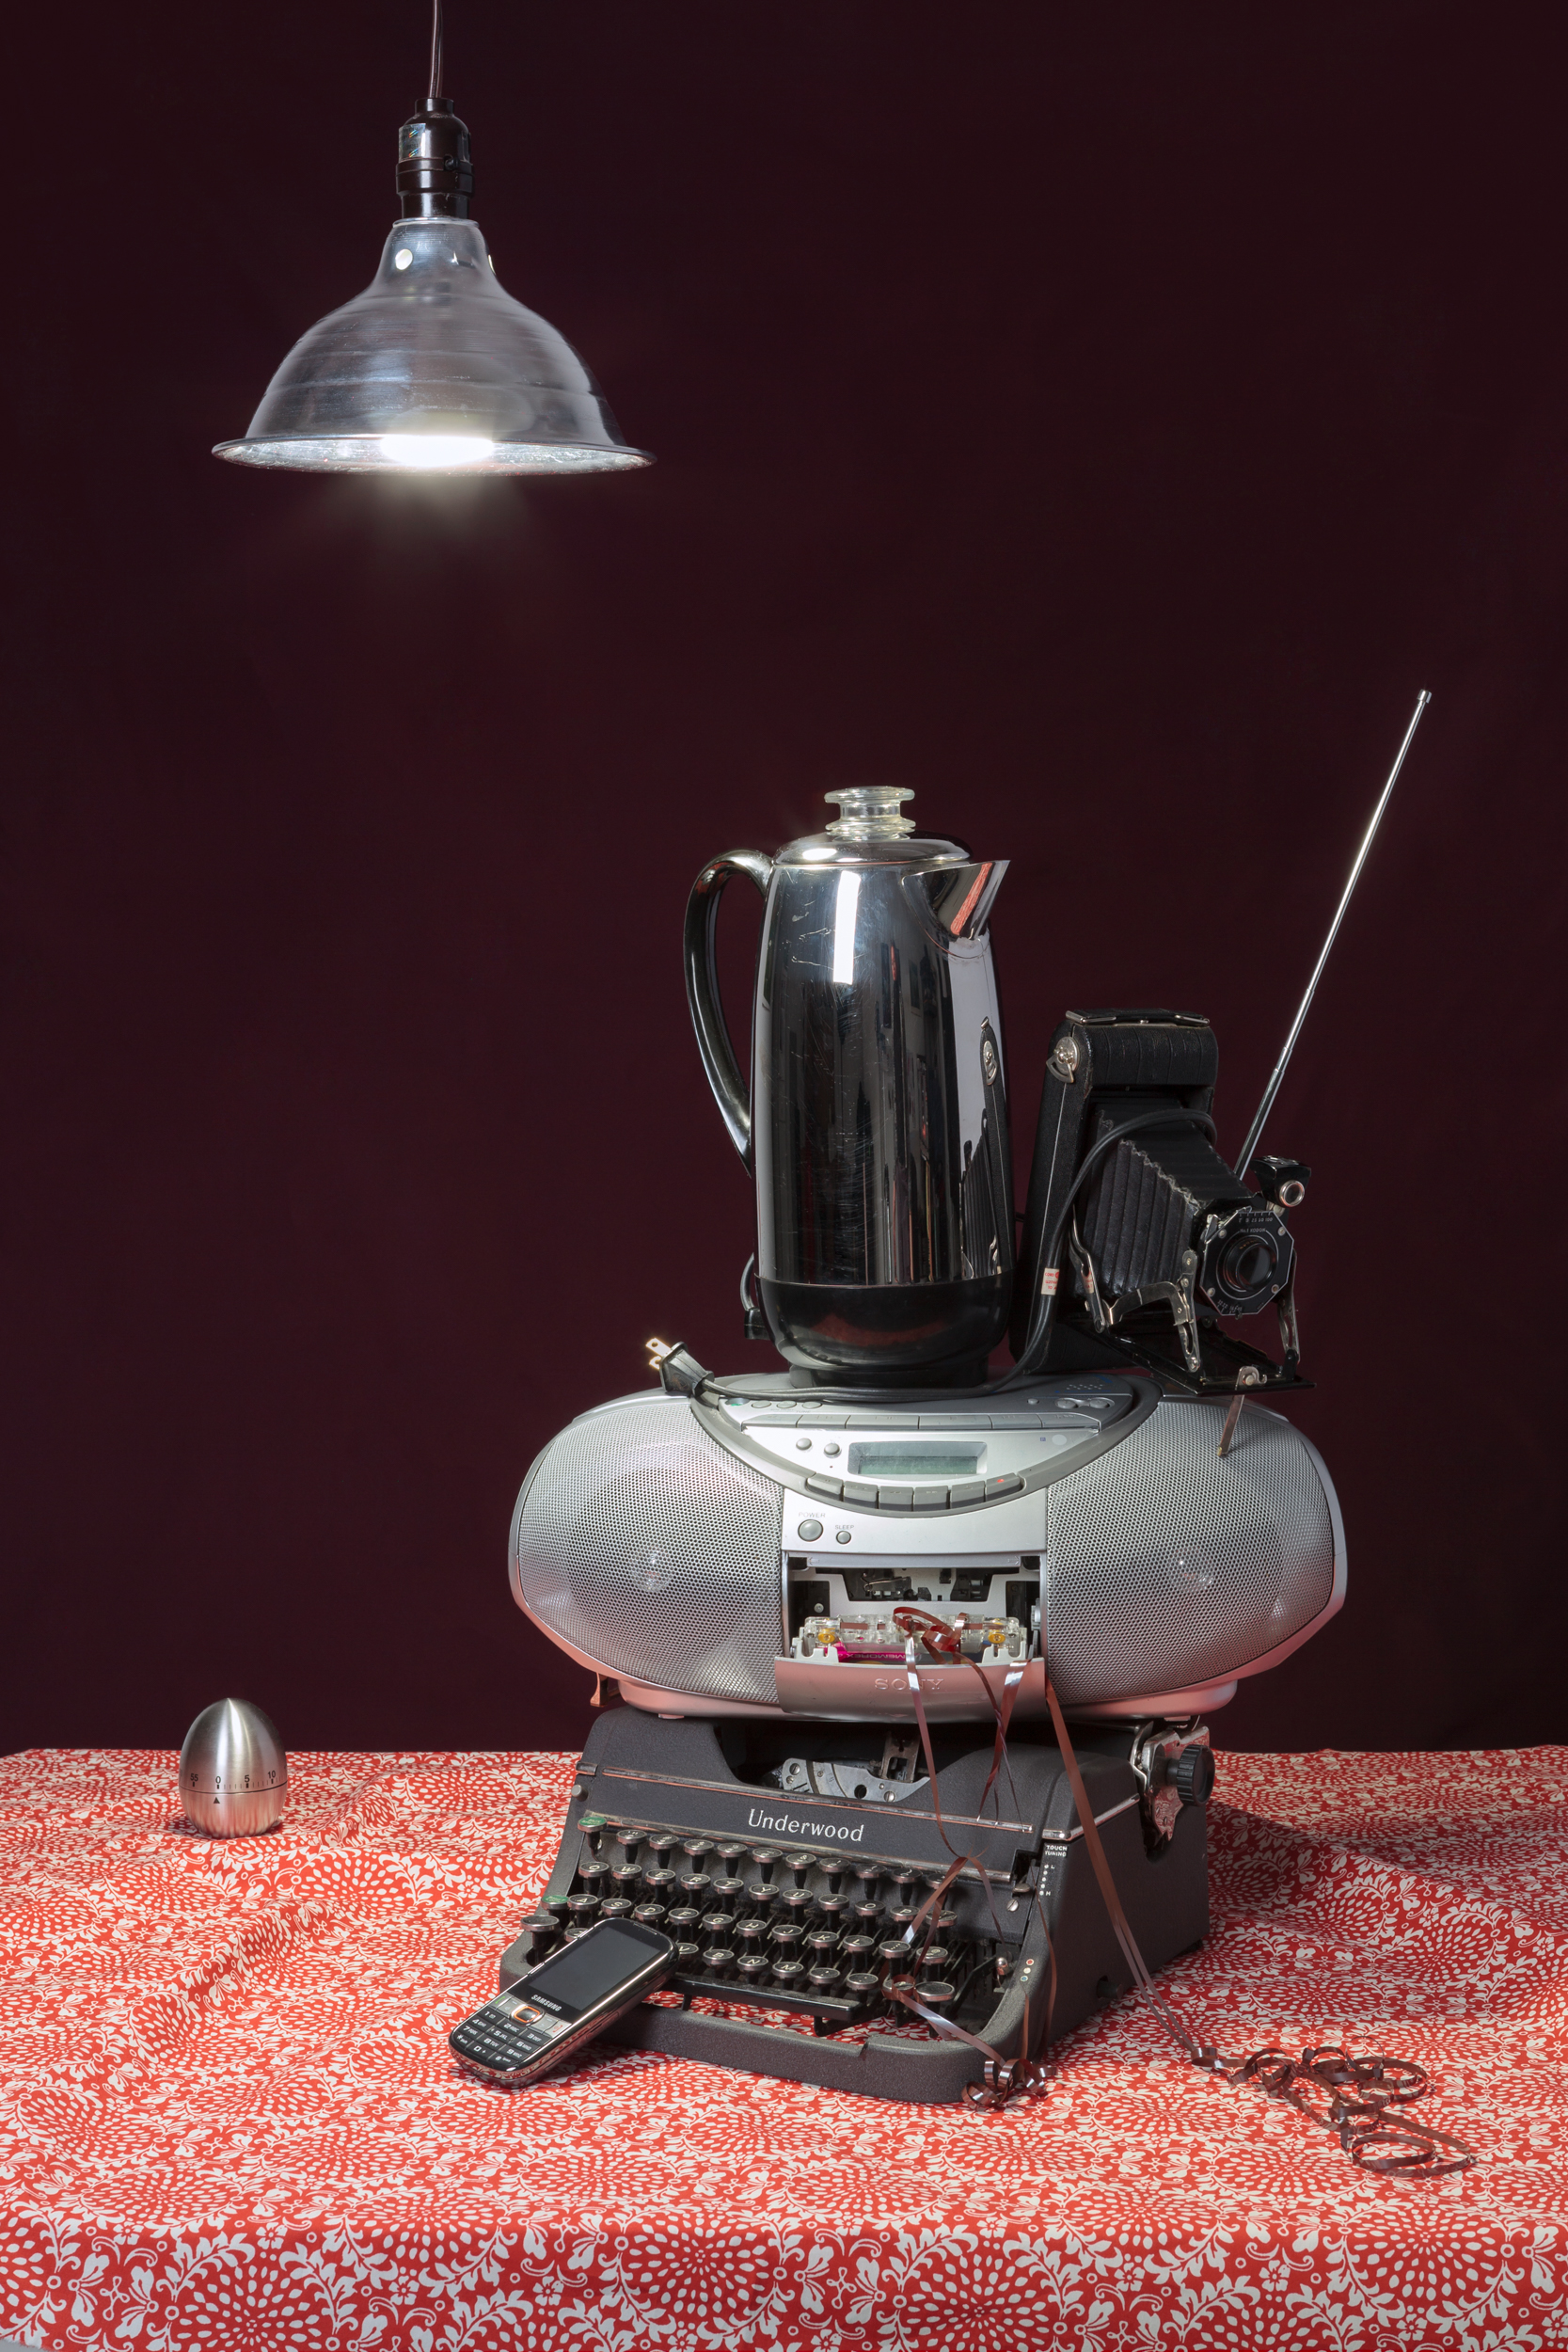 Tech Vanitas: Gray Typewriter